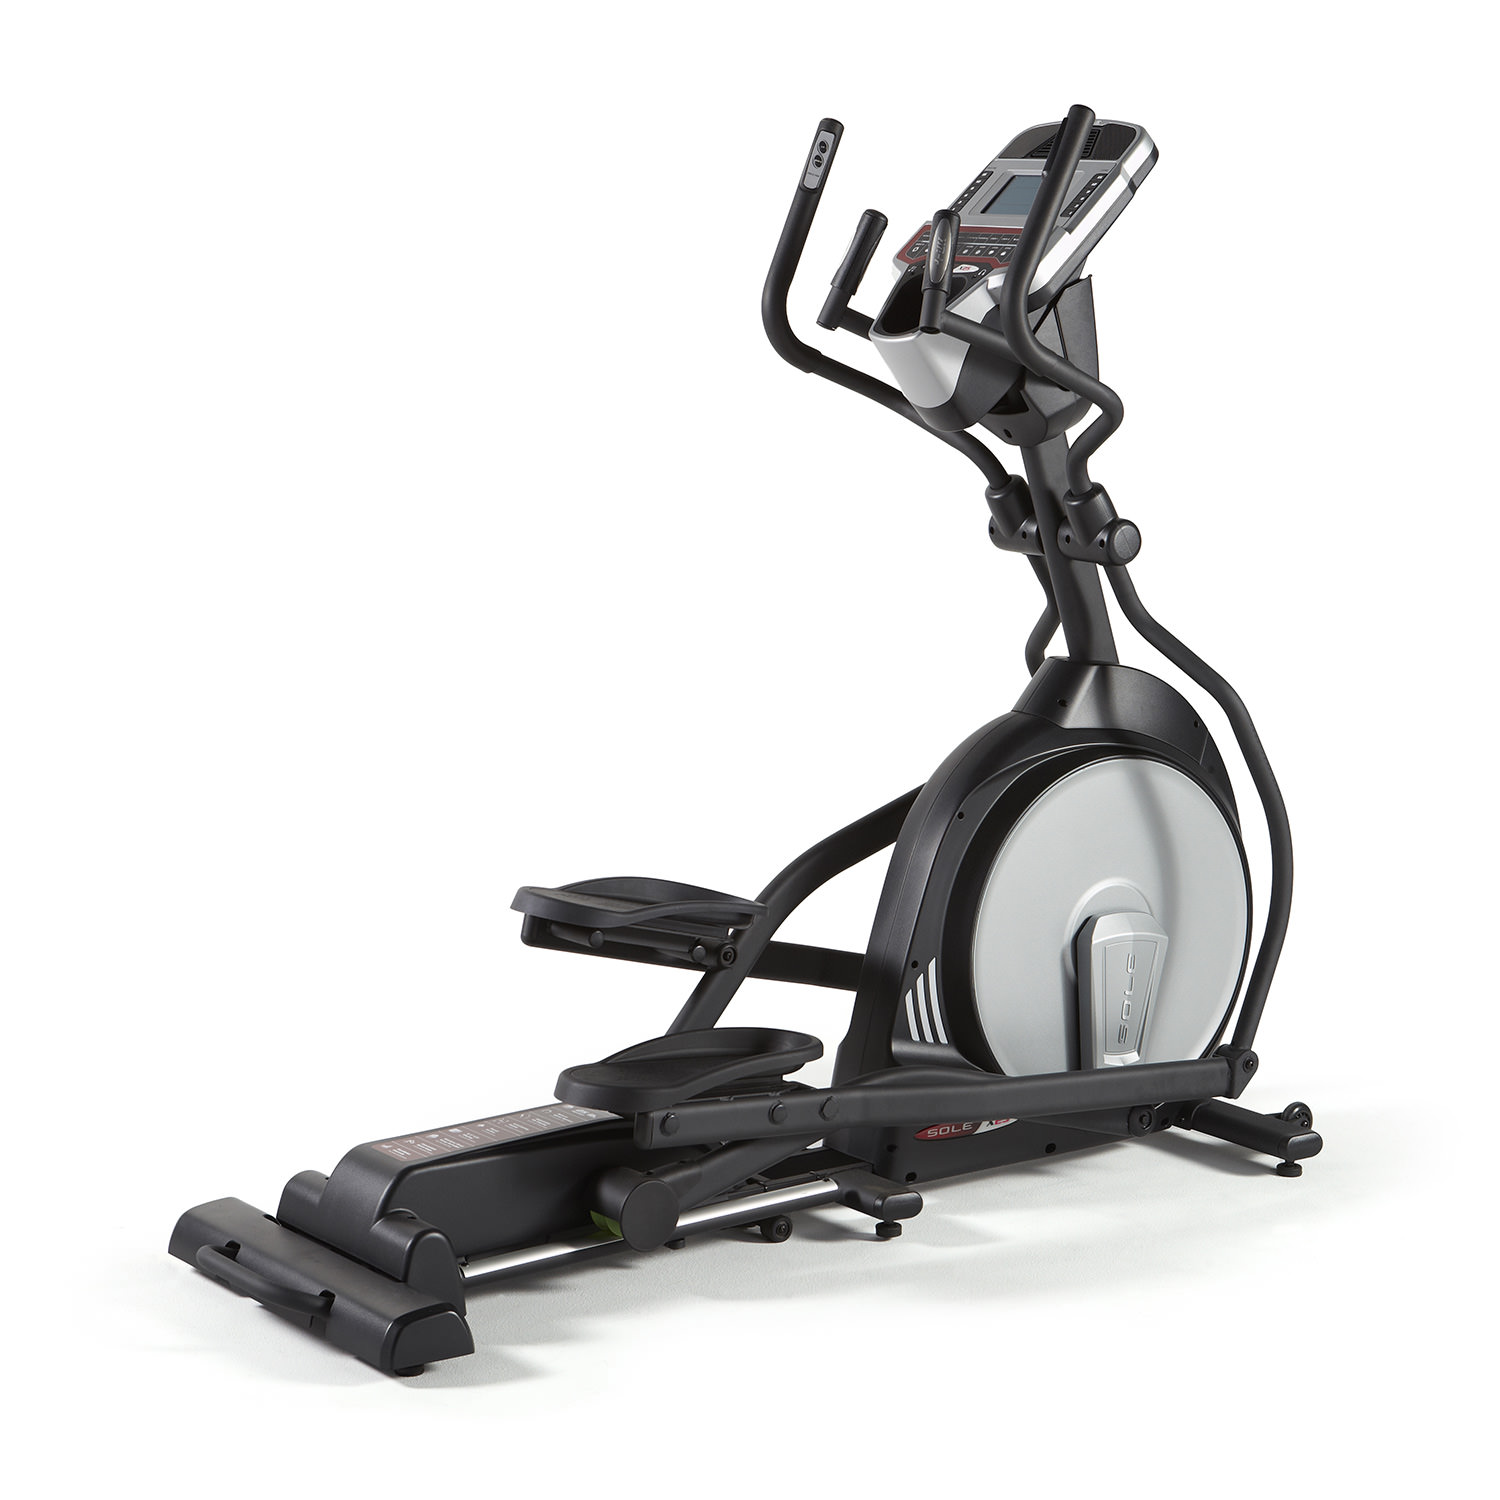 X25 Elliptical Cross Trainer